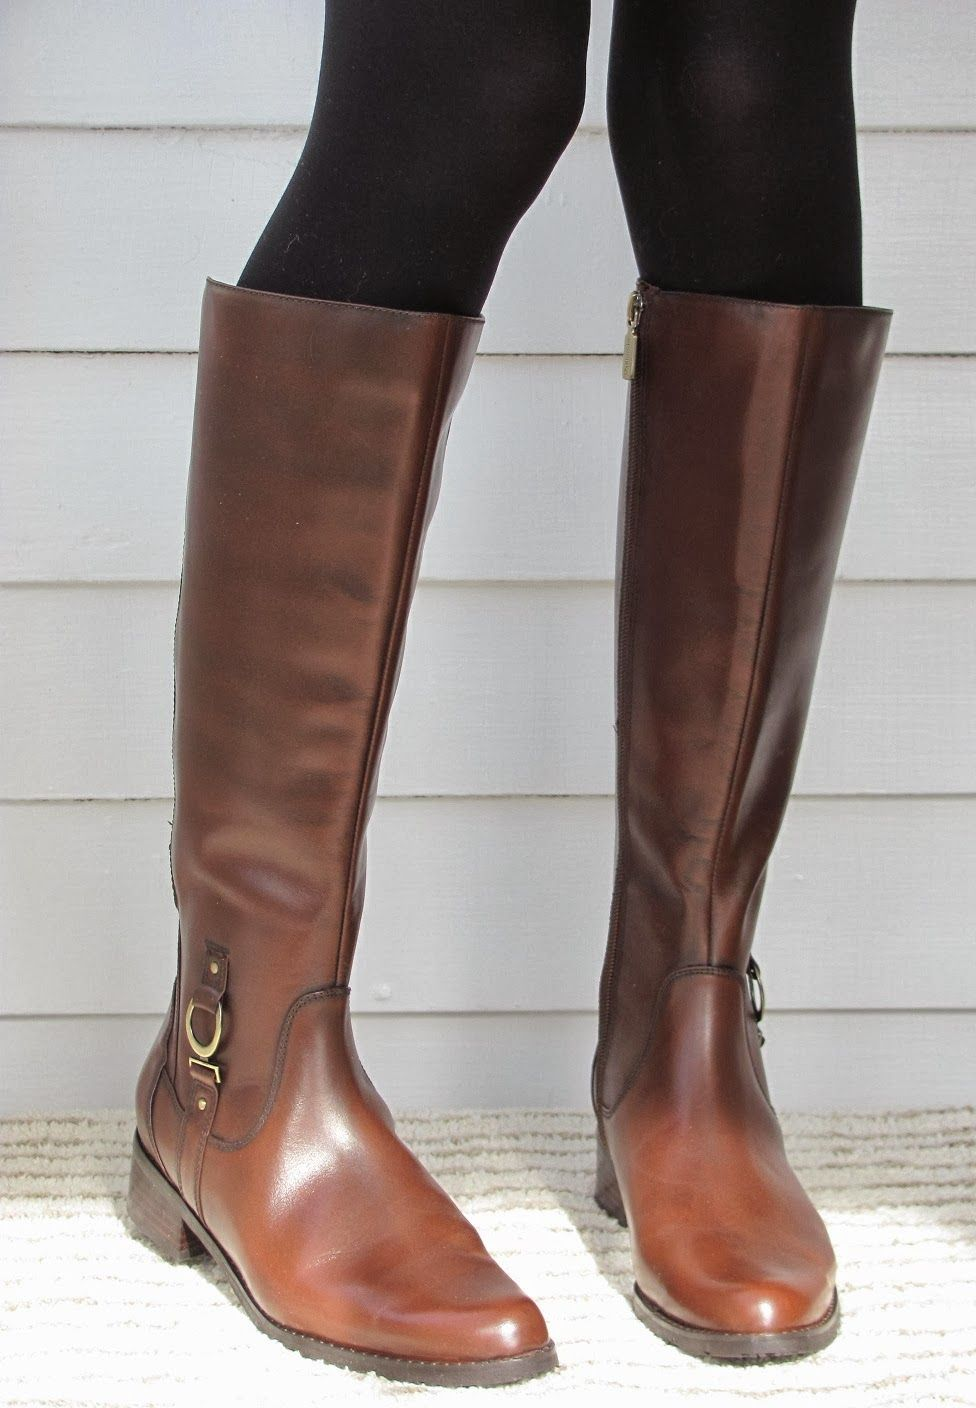 05c8b8a6680 Howdy Slim! Riding Boots for Thin Calves: Blondo Vallera | Boots in ...